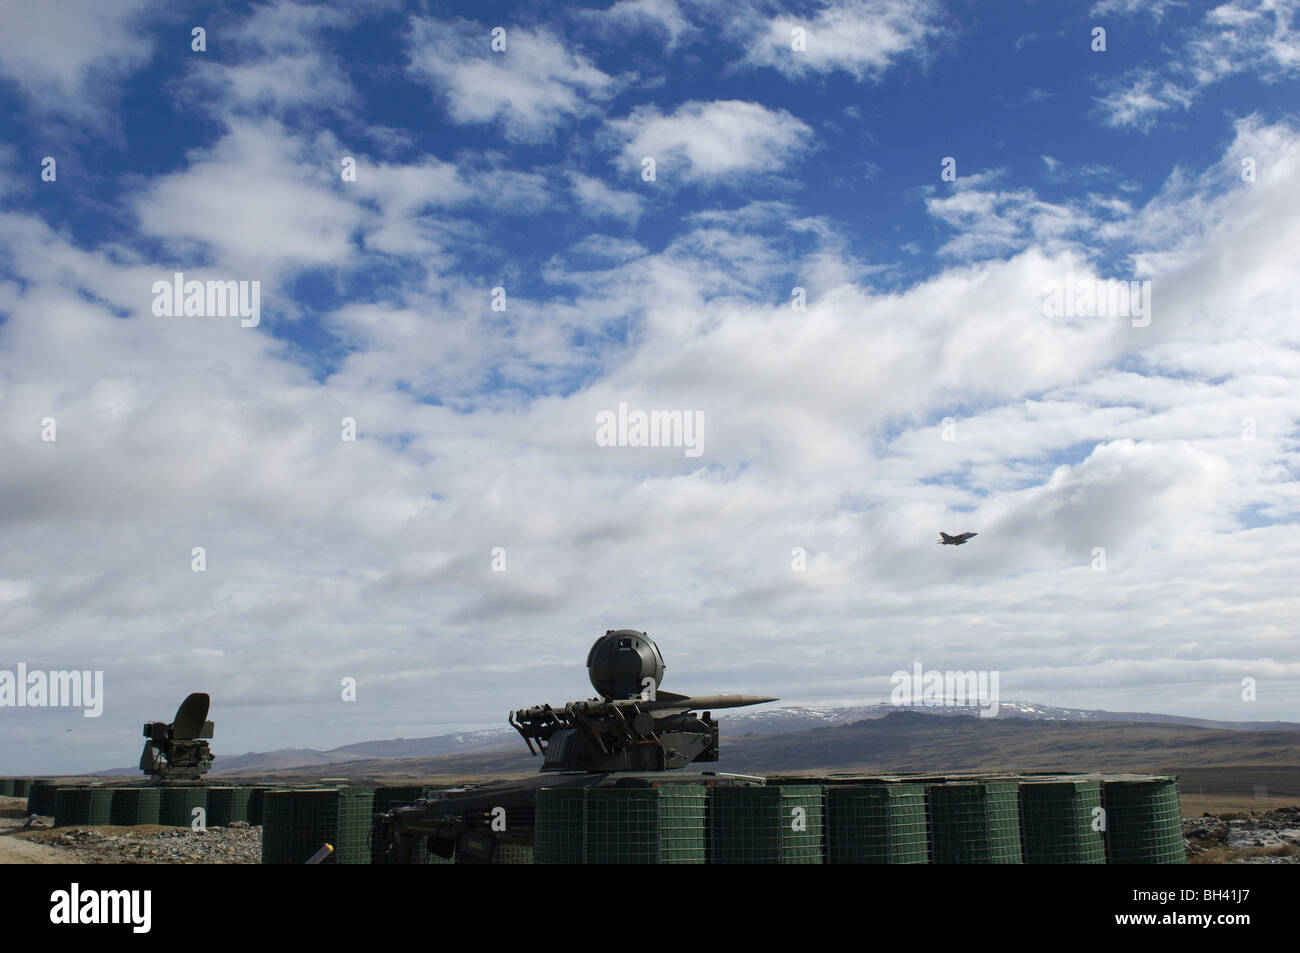 A Tornado F3 flies past a Rapier missile battery on the Falkland Islands - Stock Image